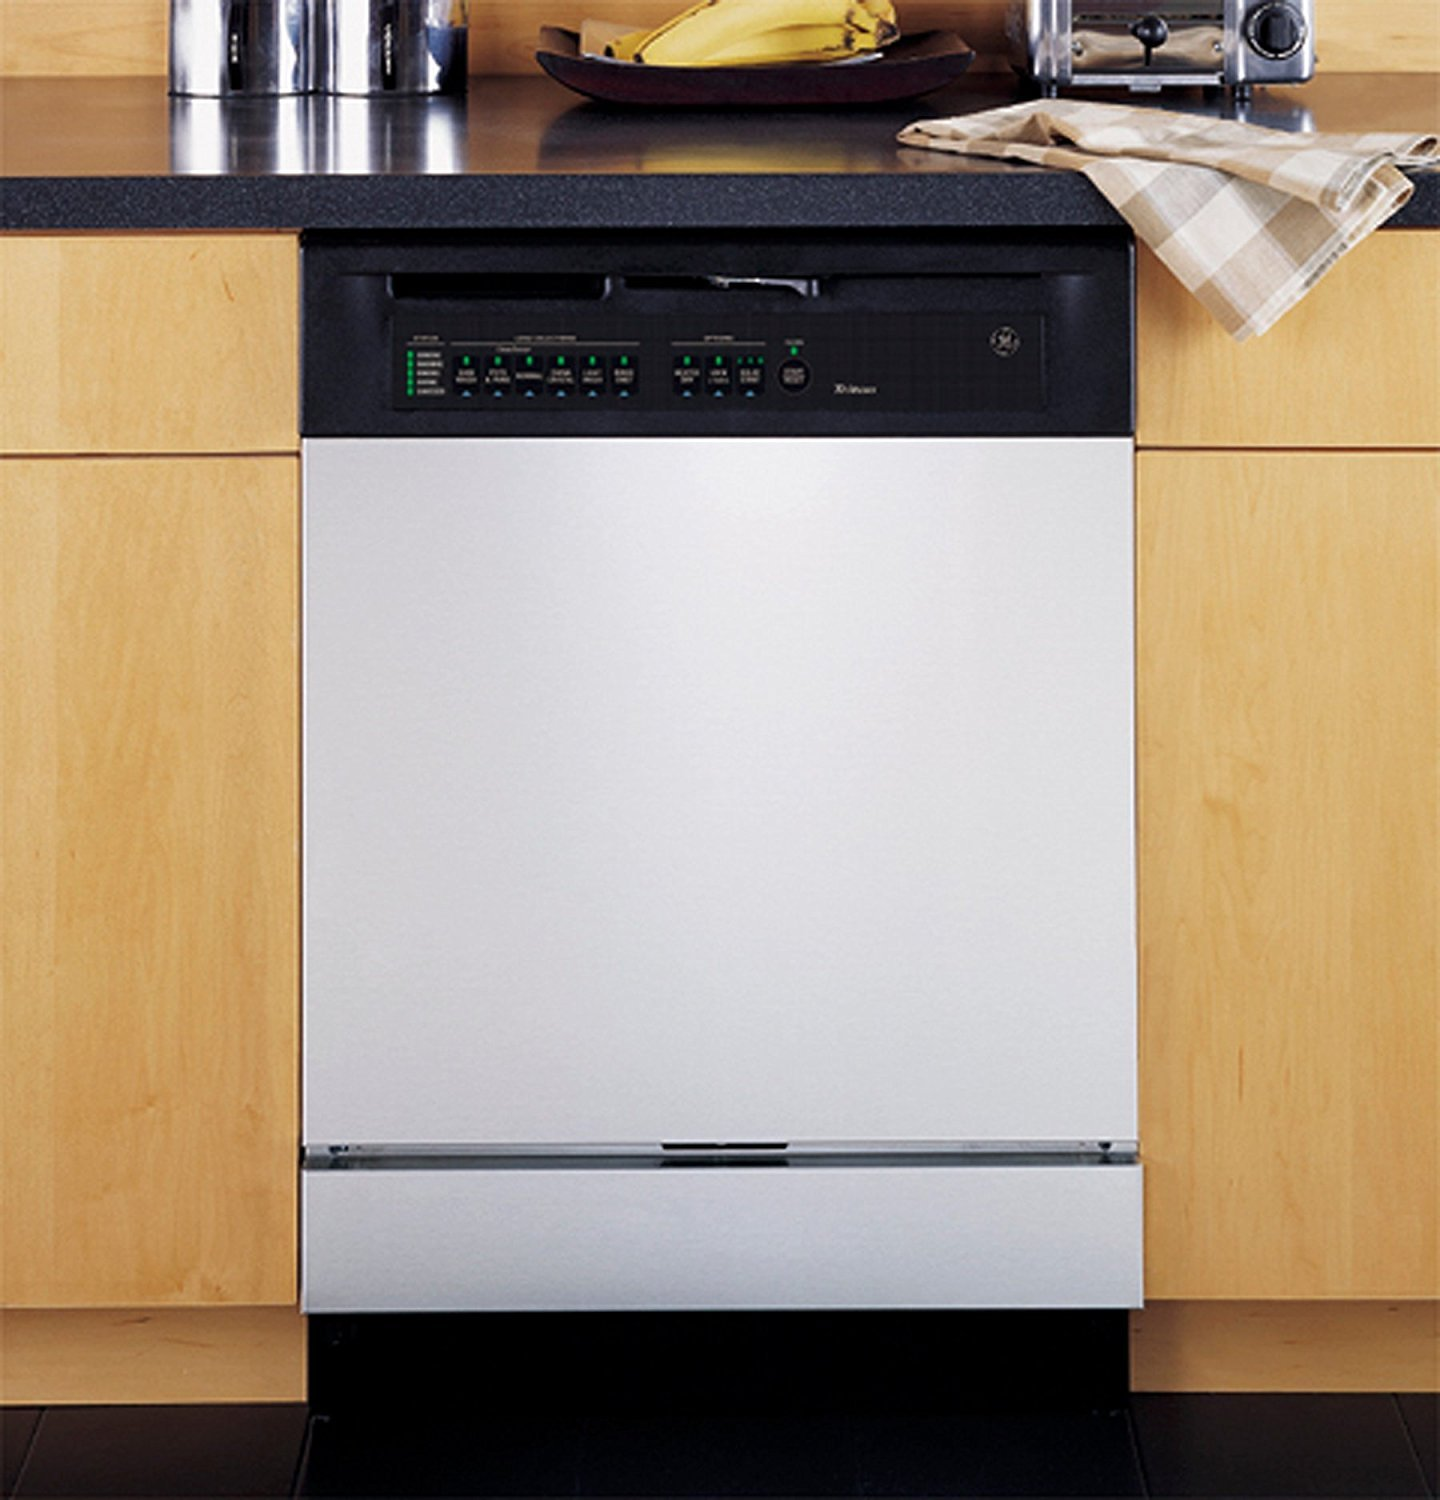 White Appliance Art Decorative Magnetic Dishwasher Front Panel Cover - Quick, Easy & Affordable DIY Kitchen Upgrade by Appliance Art